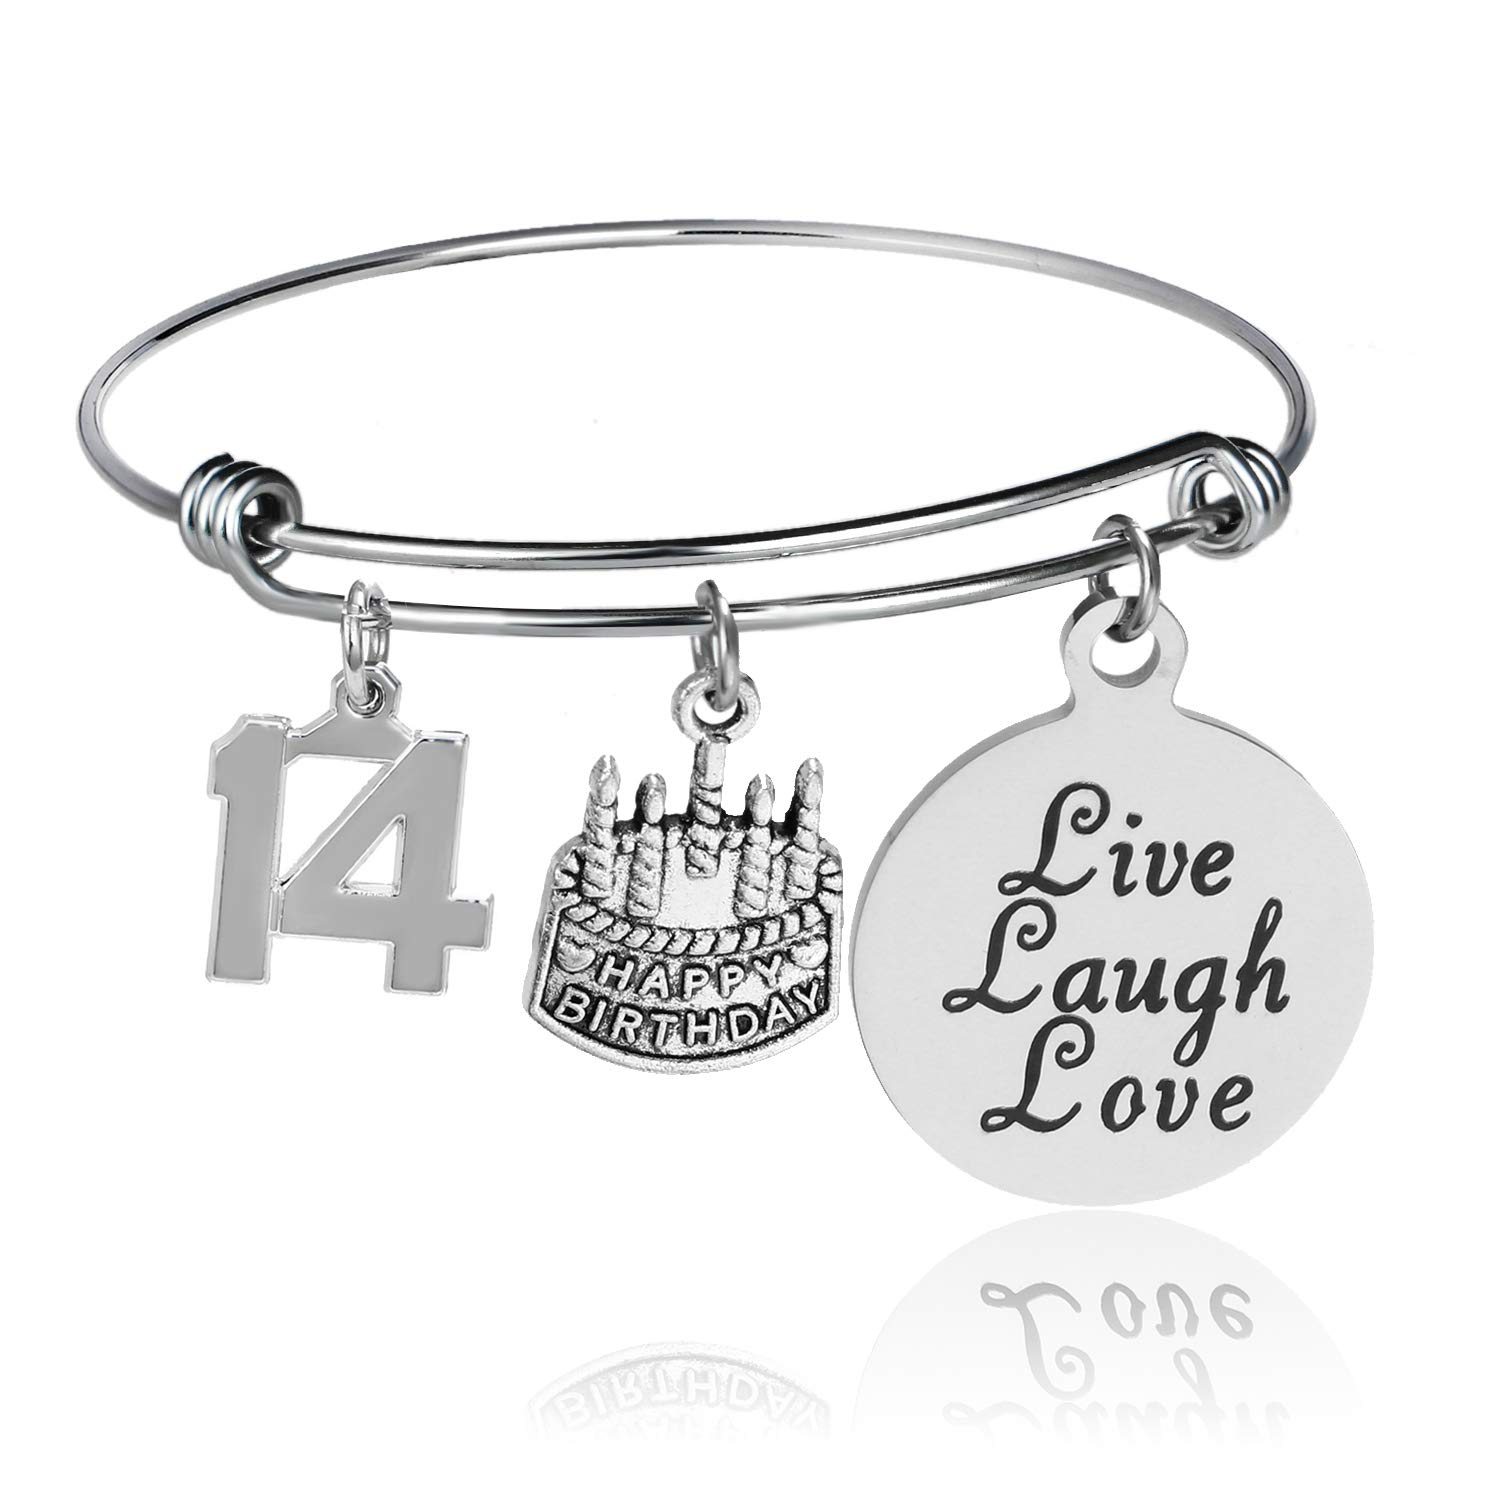 fc08a324968bc YeeQin Happy Birthday Bangles, Cake Cheer Live Laugh Love Charms Bangle  Bracelets, Gifts for